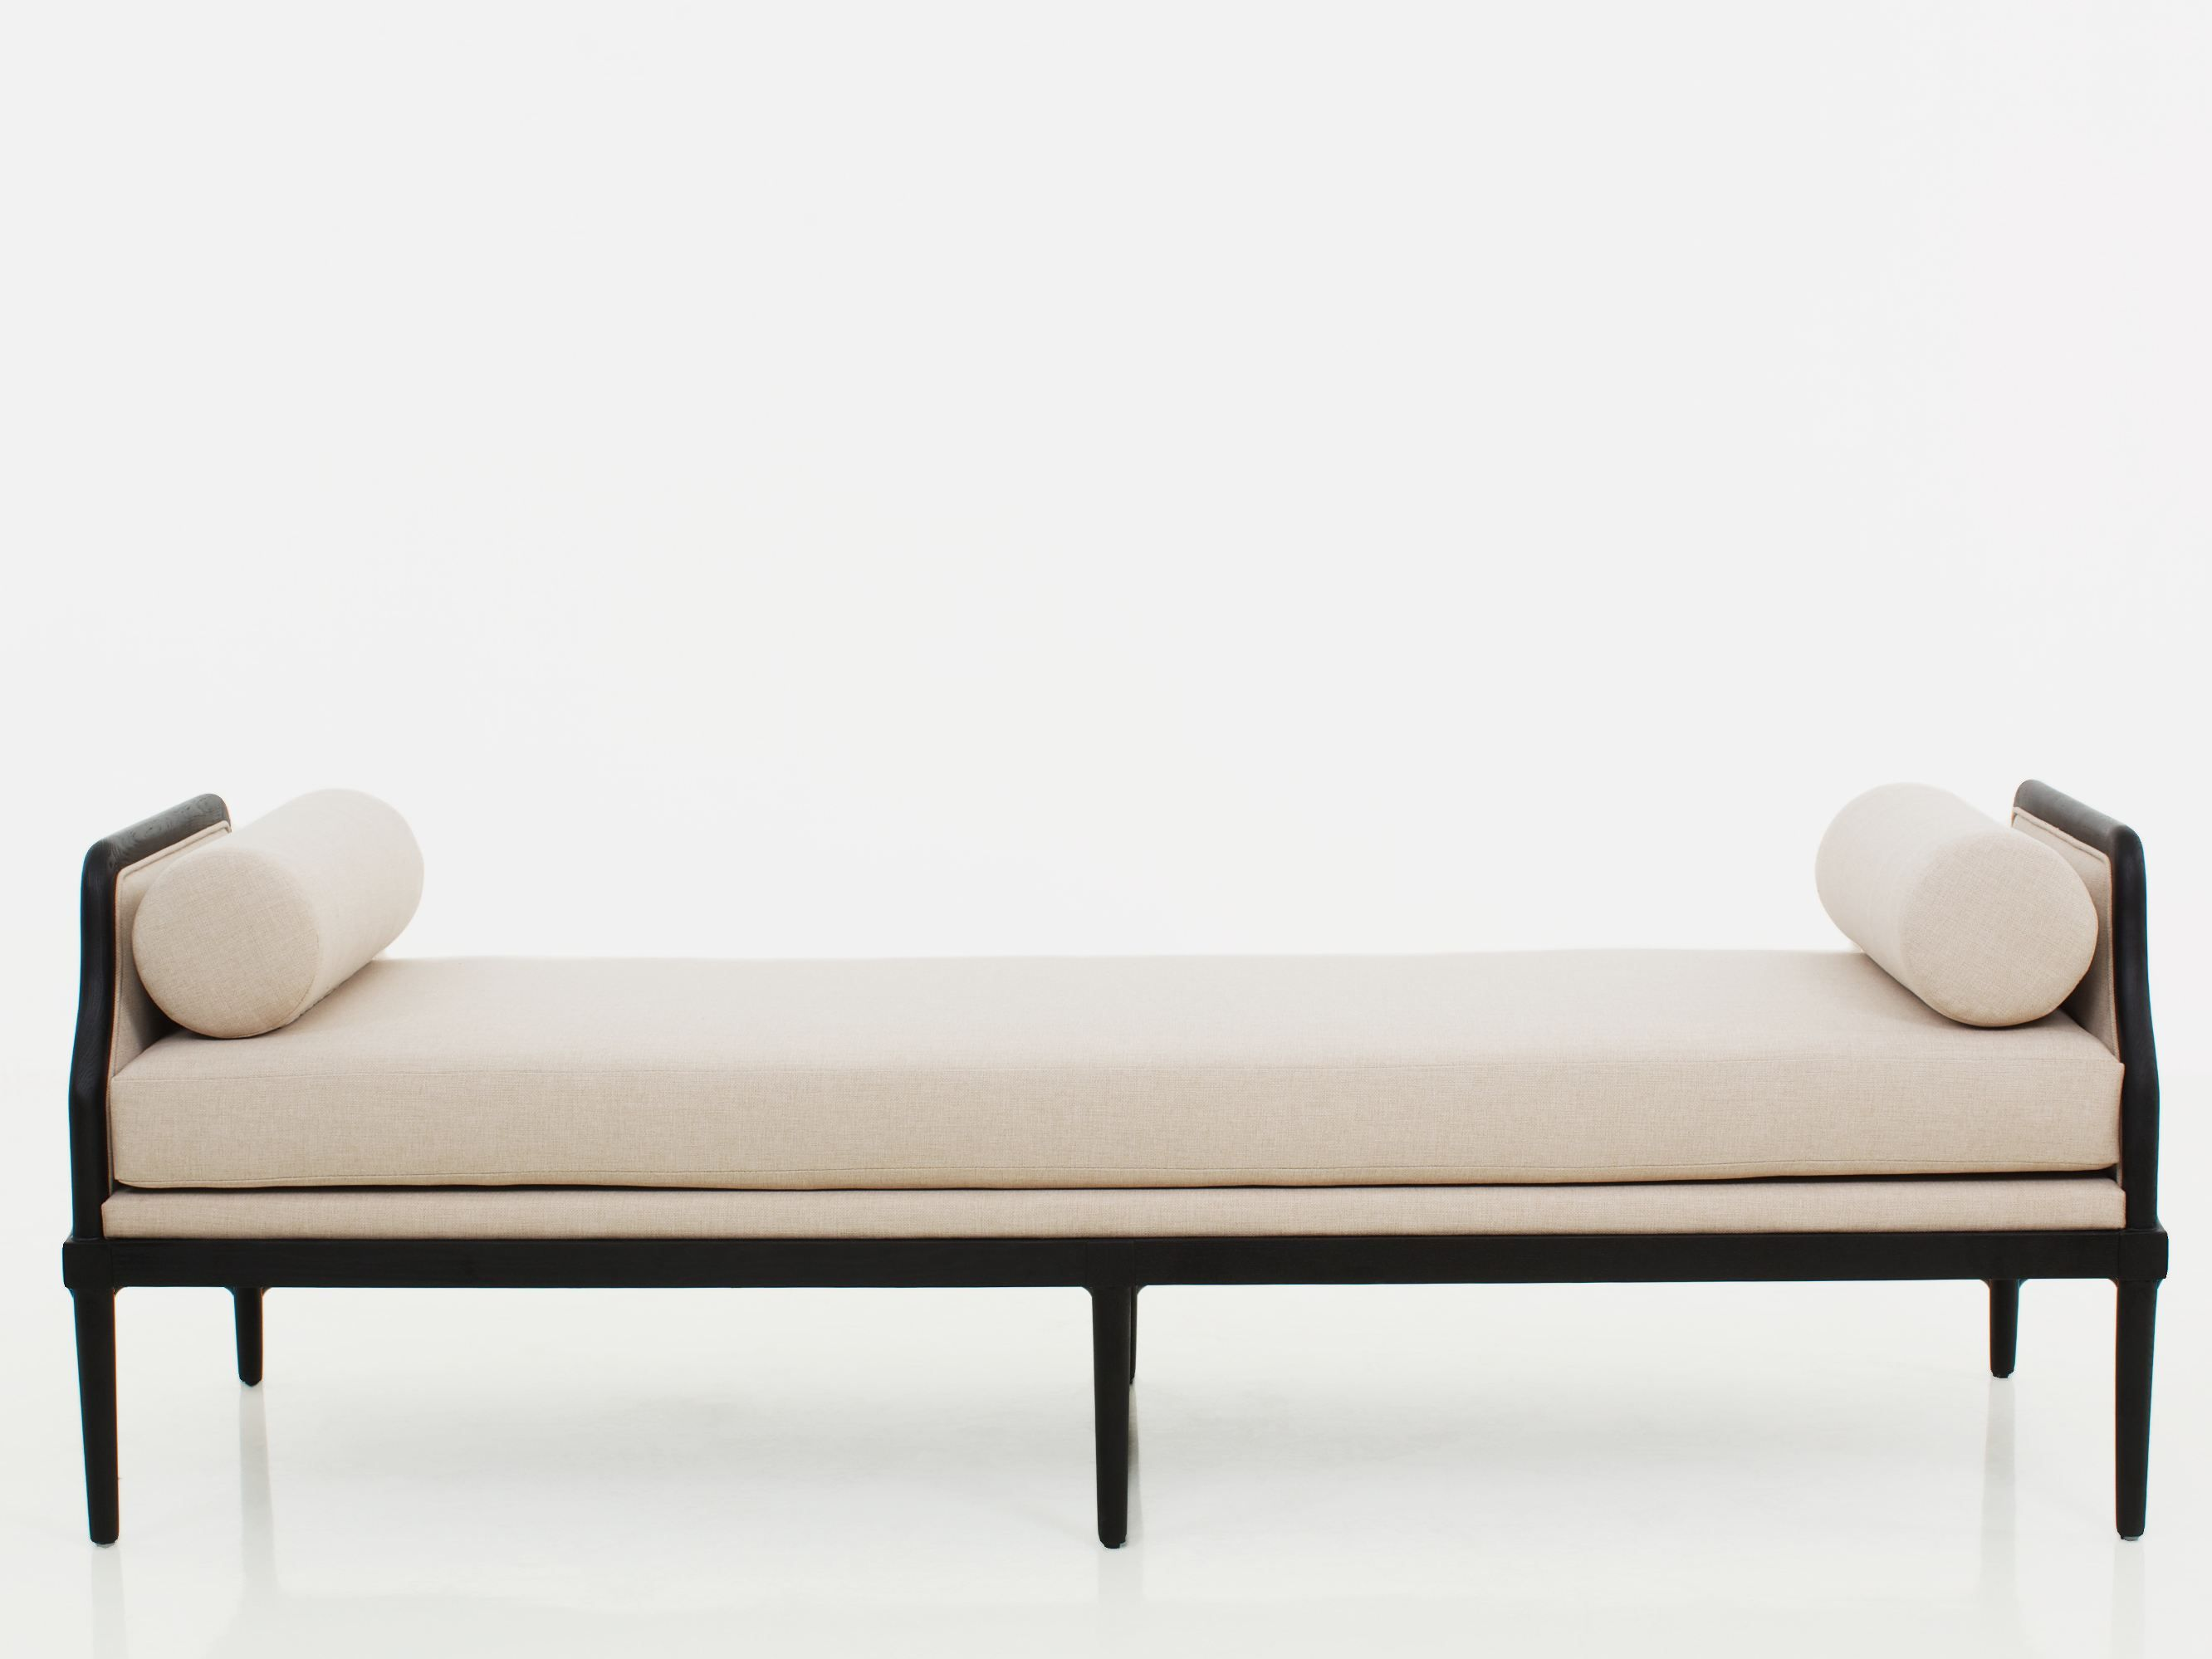 laval chaise longue by stellar works oeo furniture rh pinterest com